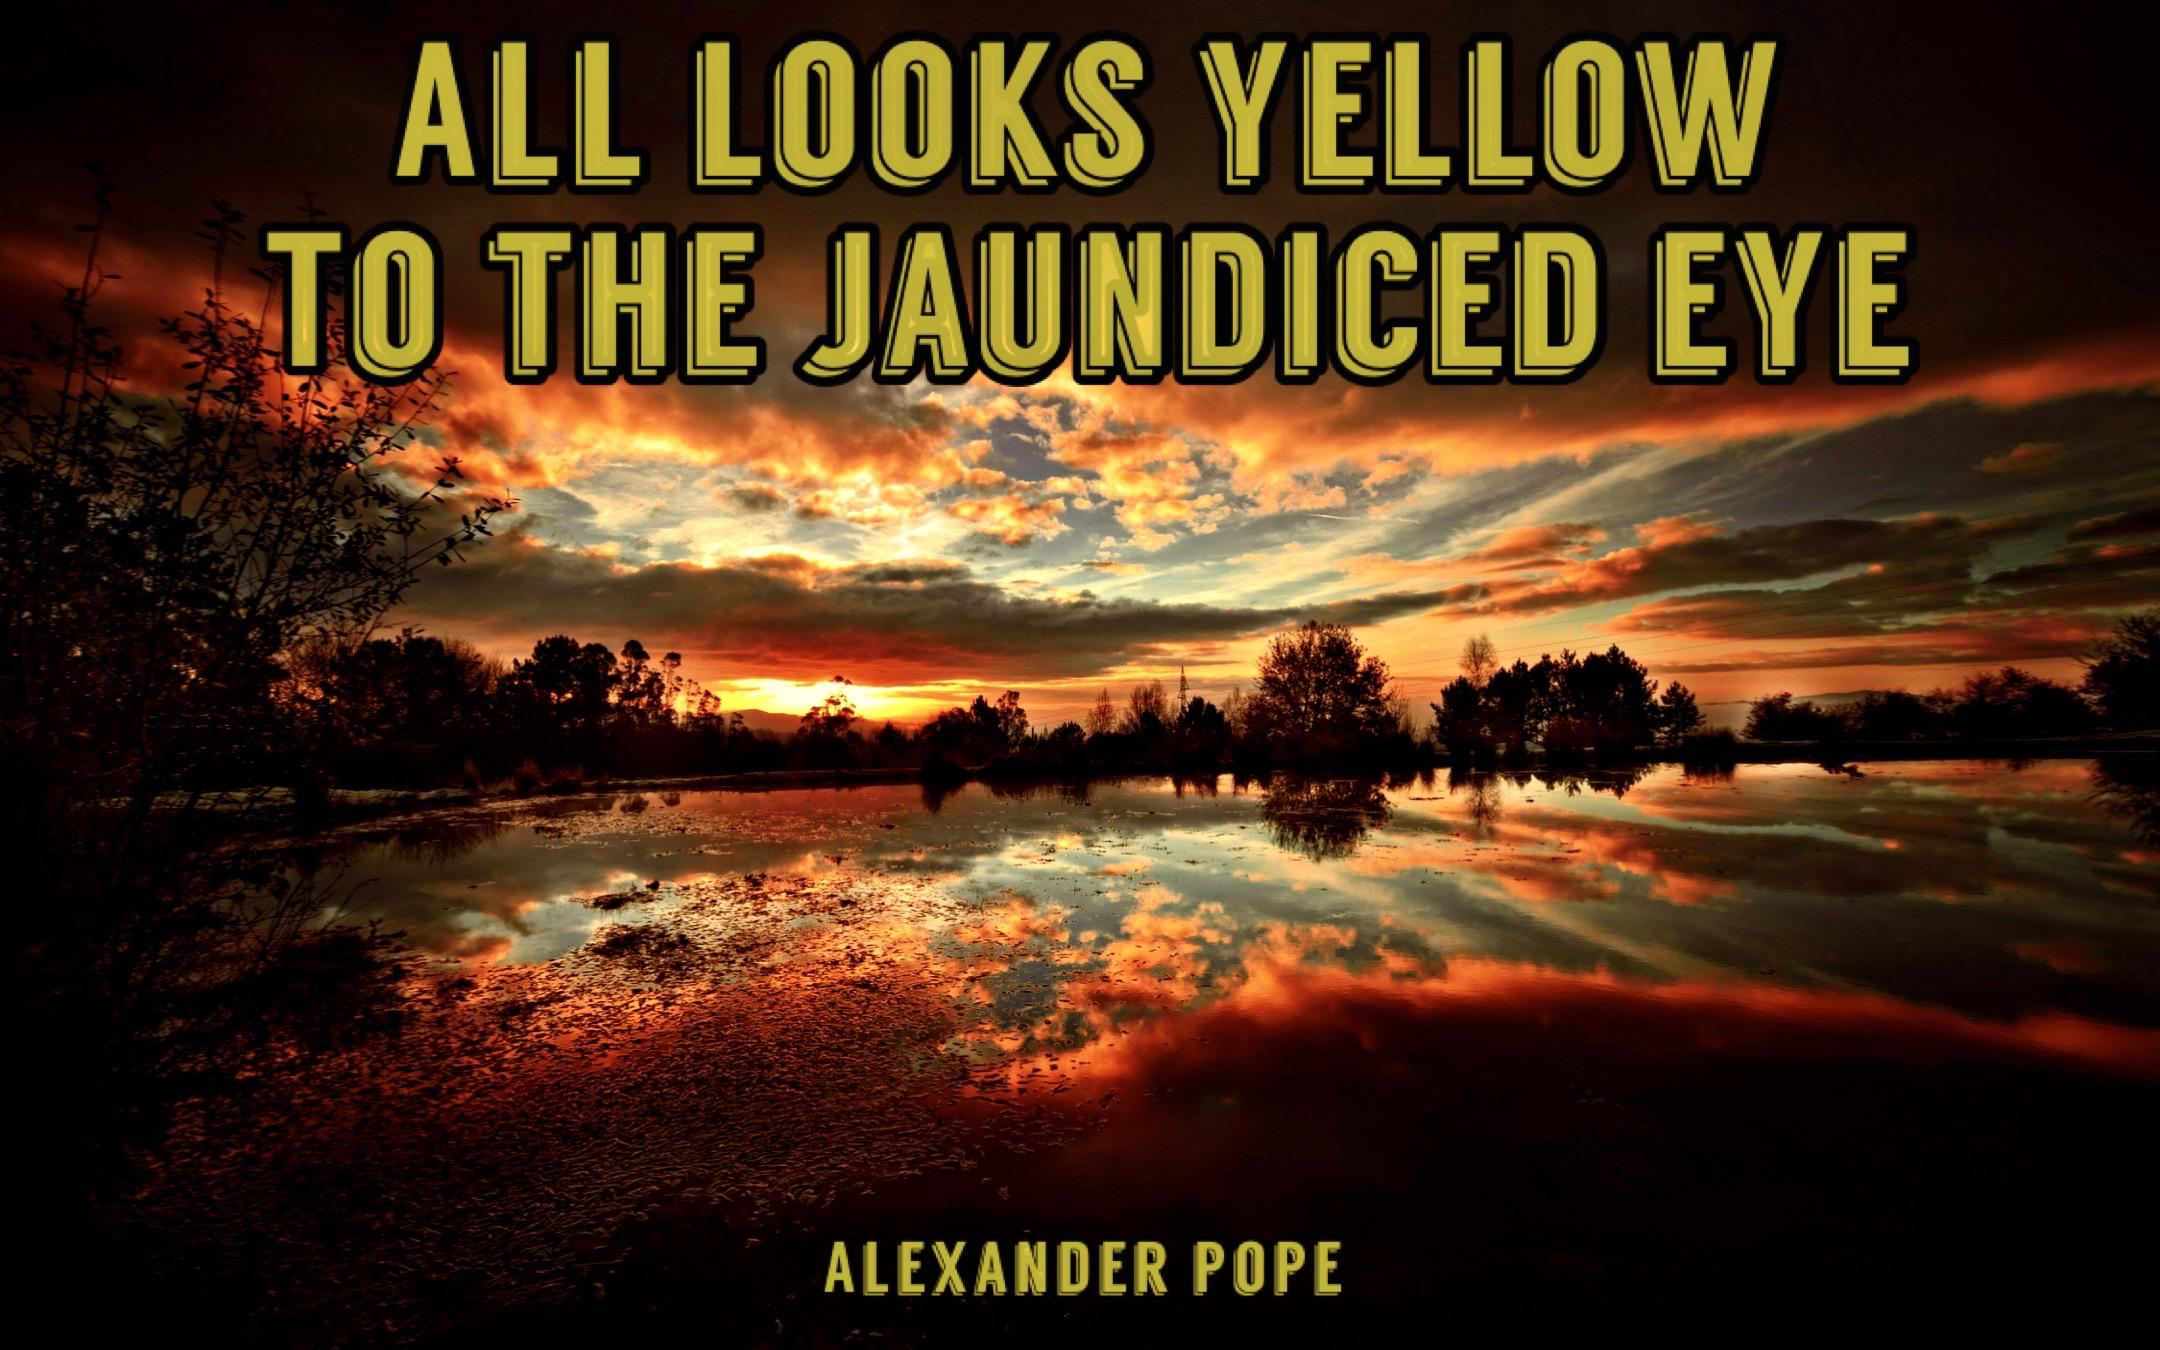 All looks yellow to the jaundiced eye -Alexander Pope [2880 X 1800]